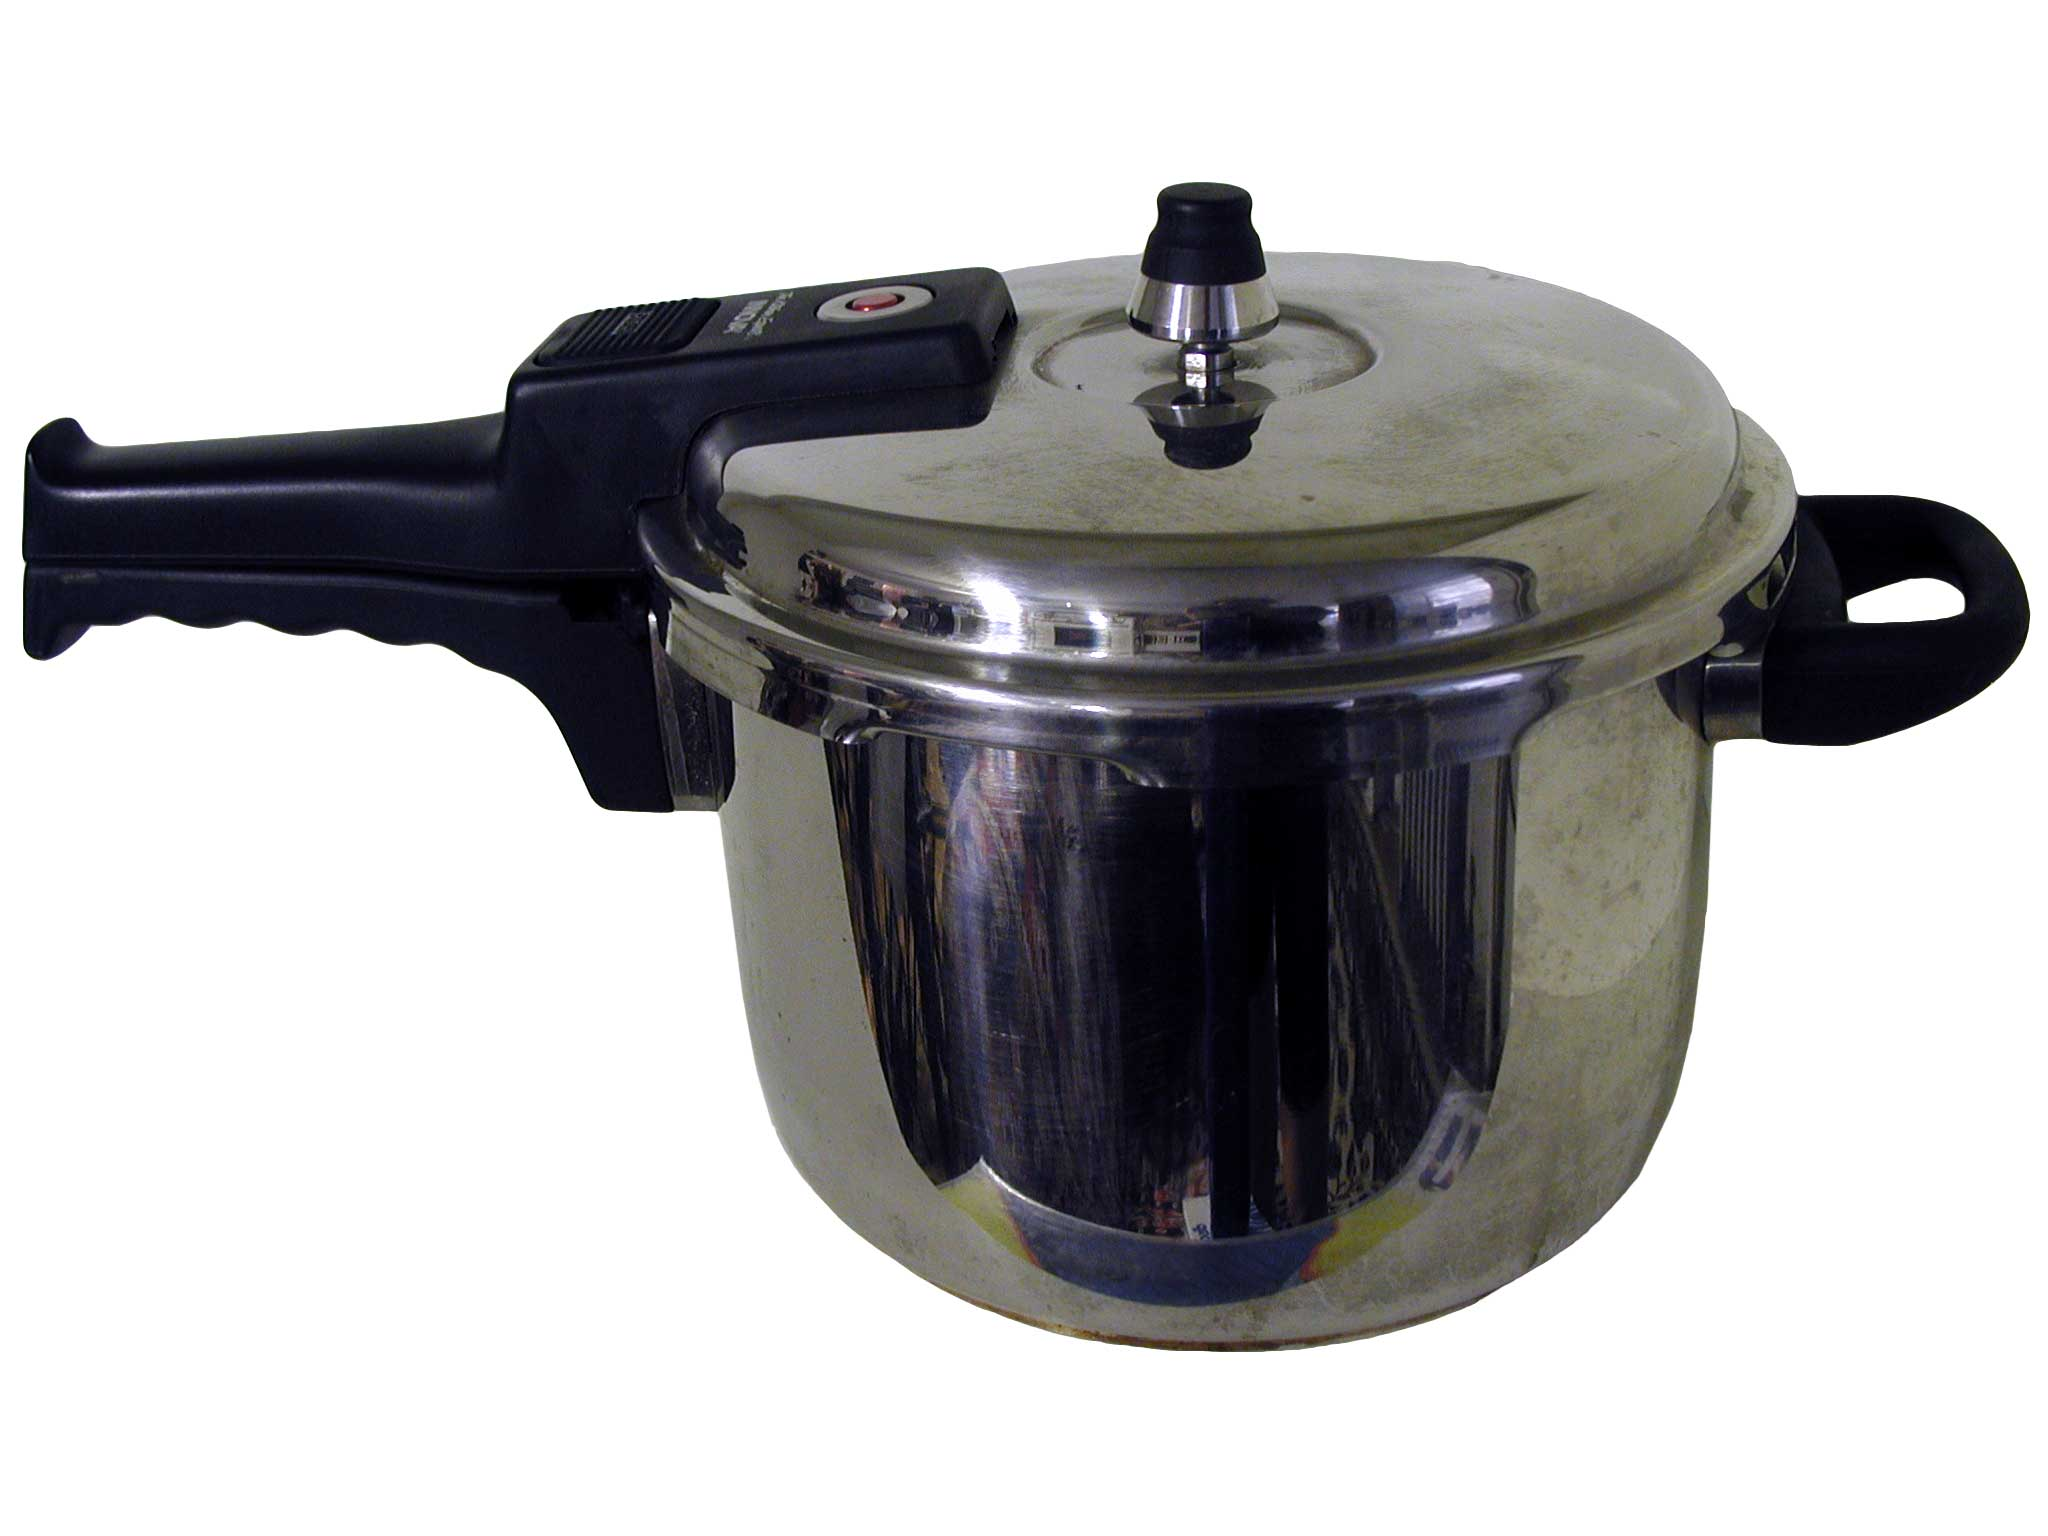 Photo of a pressure cooker